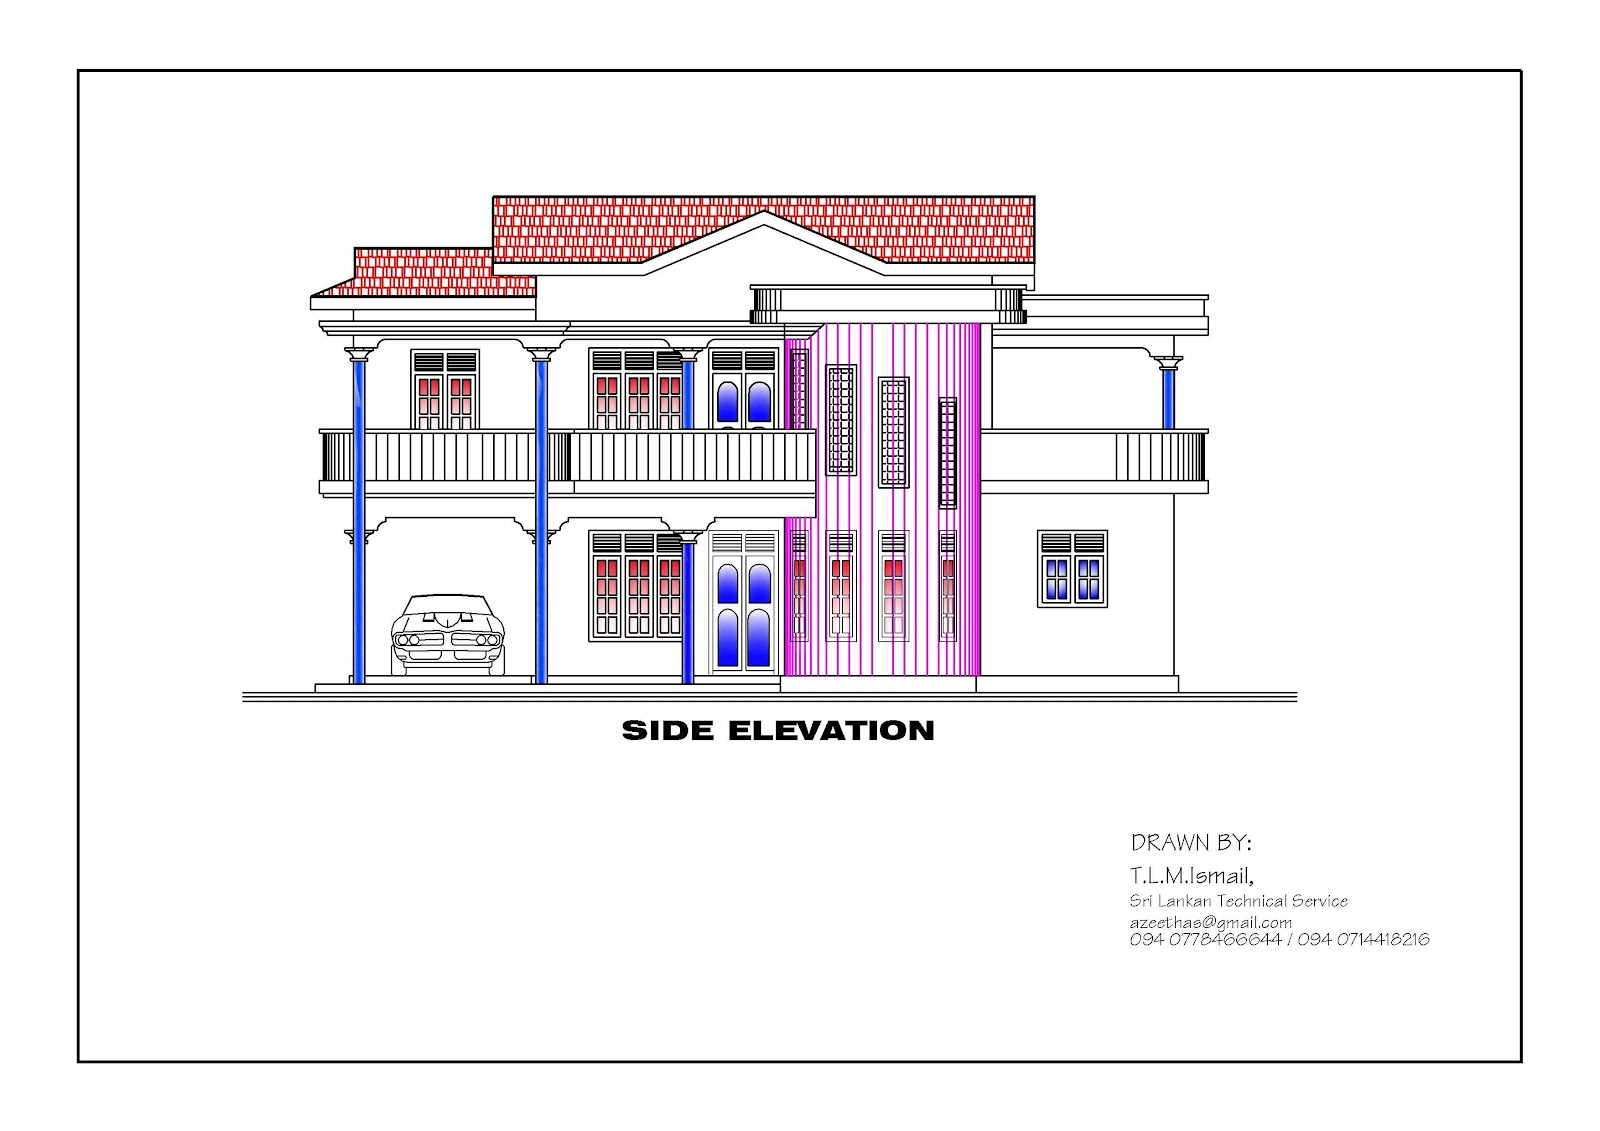 free building drawing at getdrawings com free for